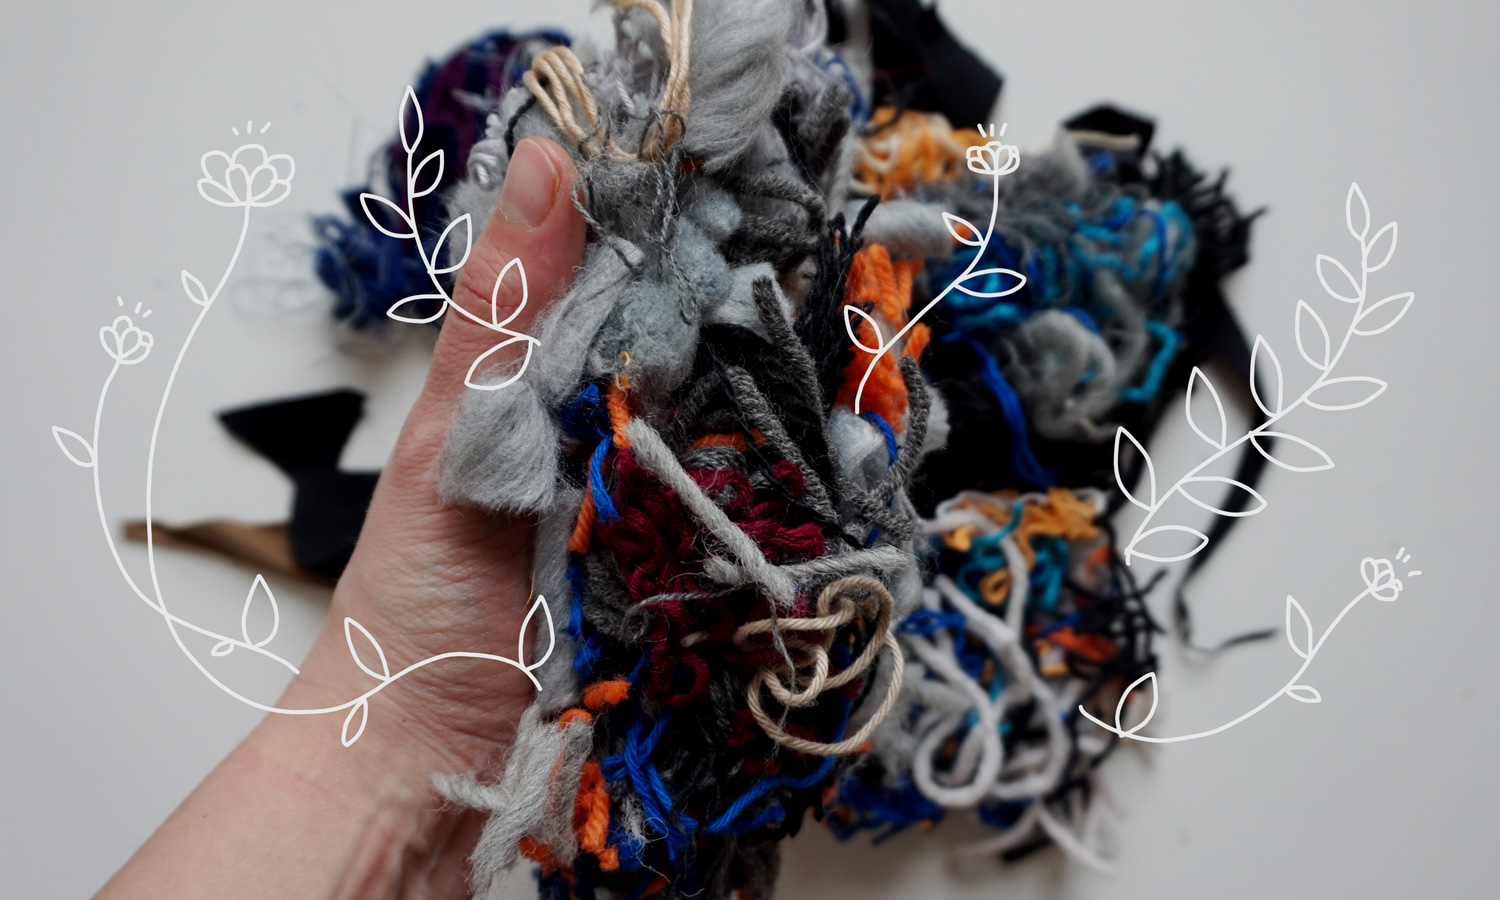 A pile of yarn and textile scraps with illustrated plants growing from it.